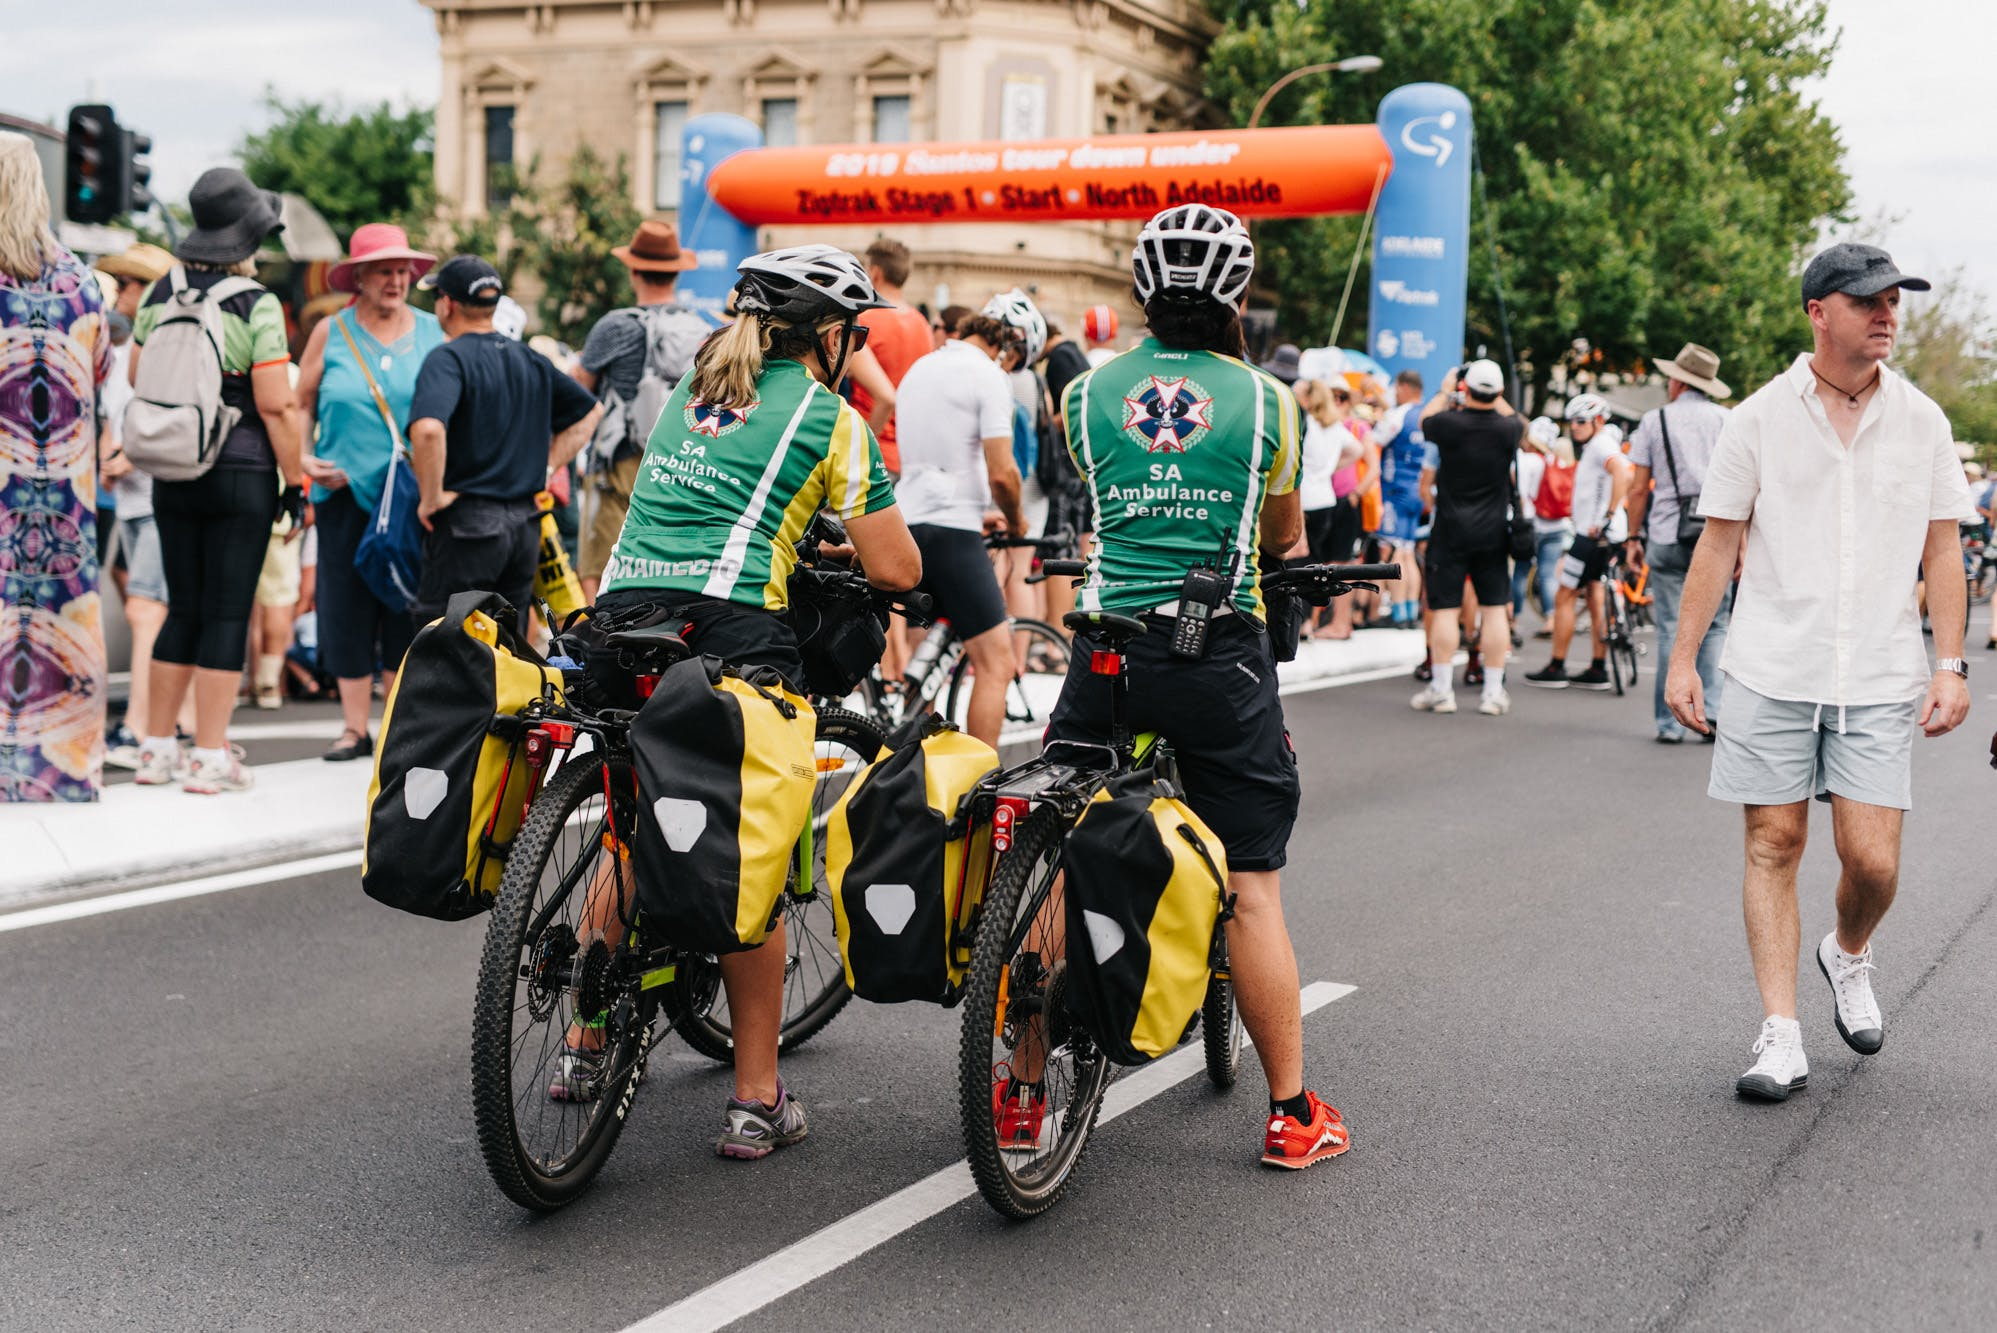 TDU.North Adelaide.jpg